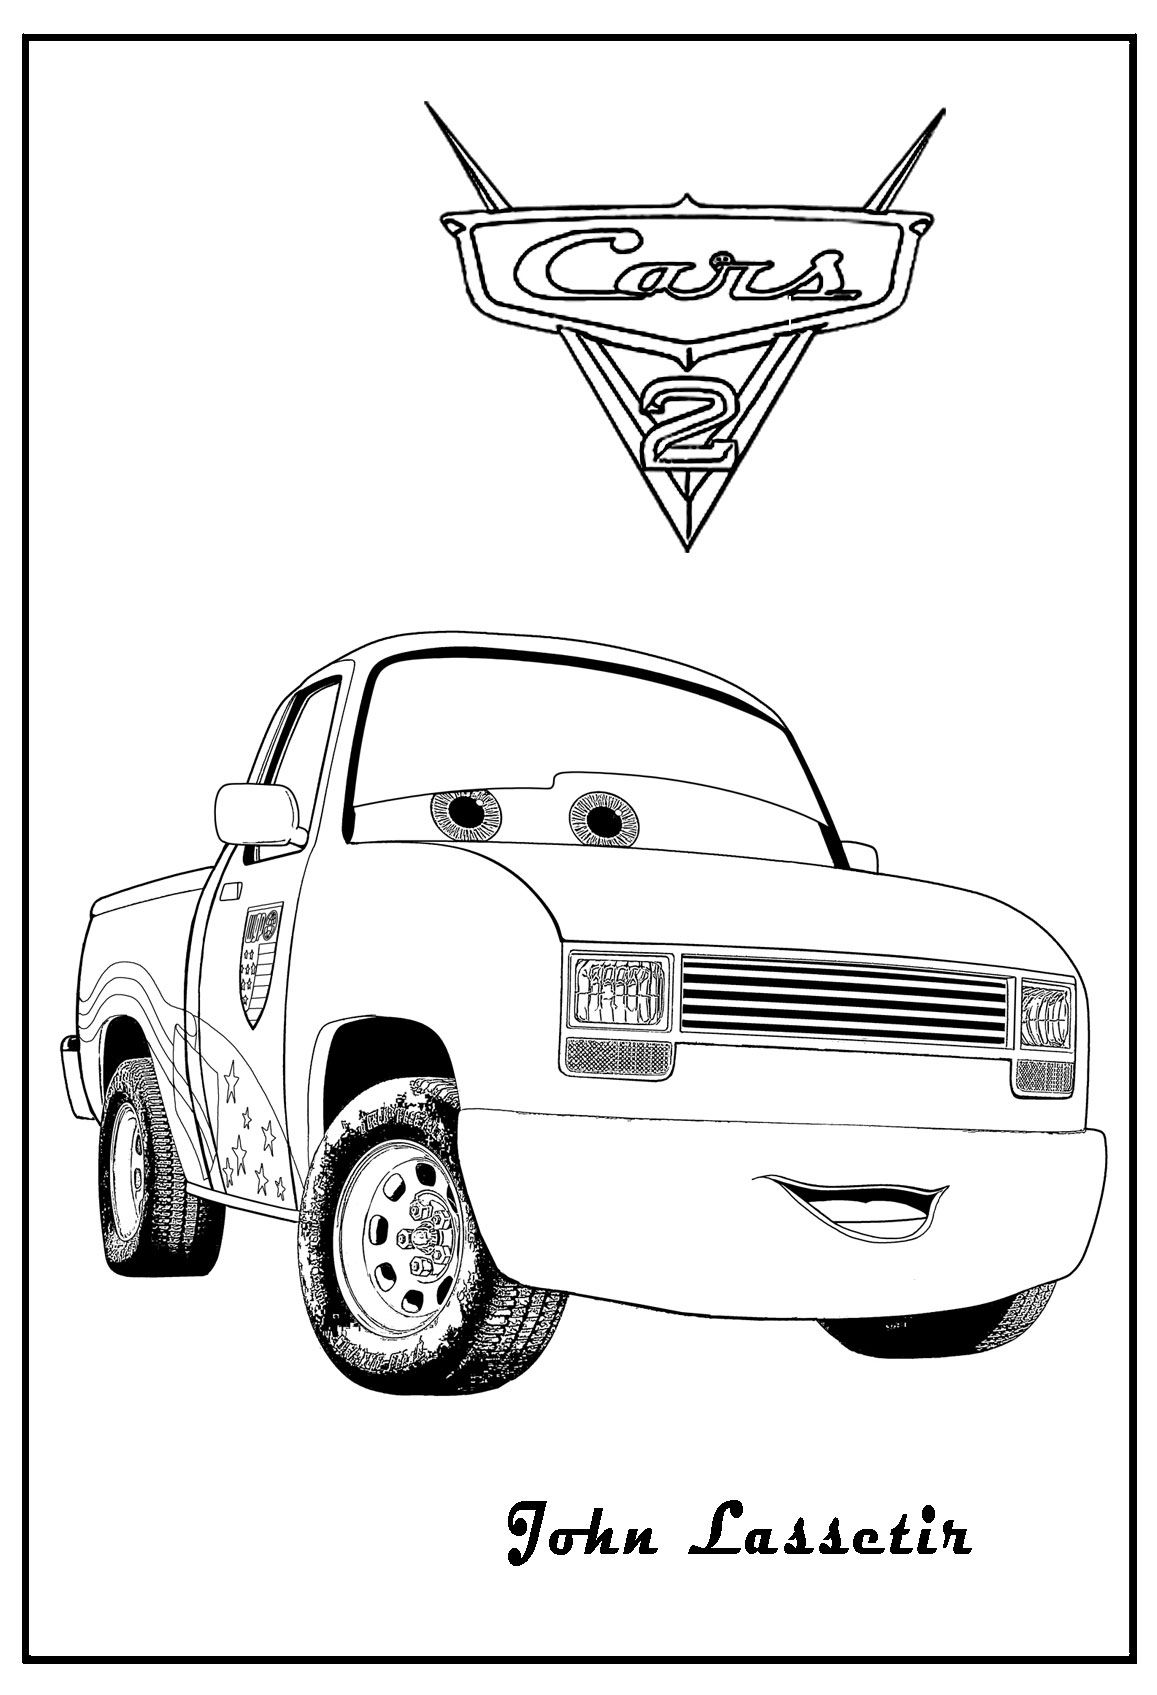 Printable coloring pages cars - Cars 2 Printable Coloring Pages Cars Coloring John Lassetire Cars Coloring Lizzie Cars Coloring The